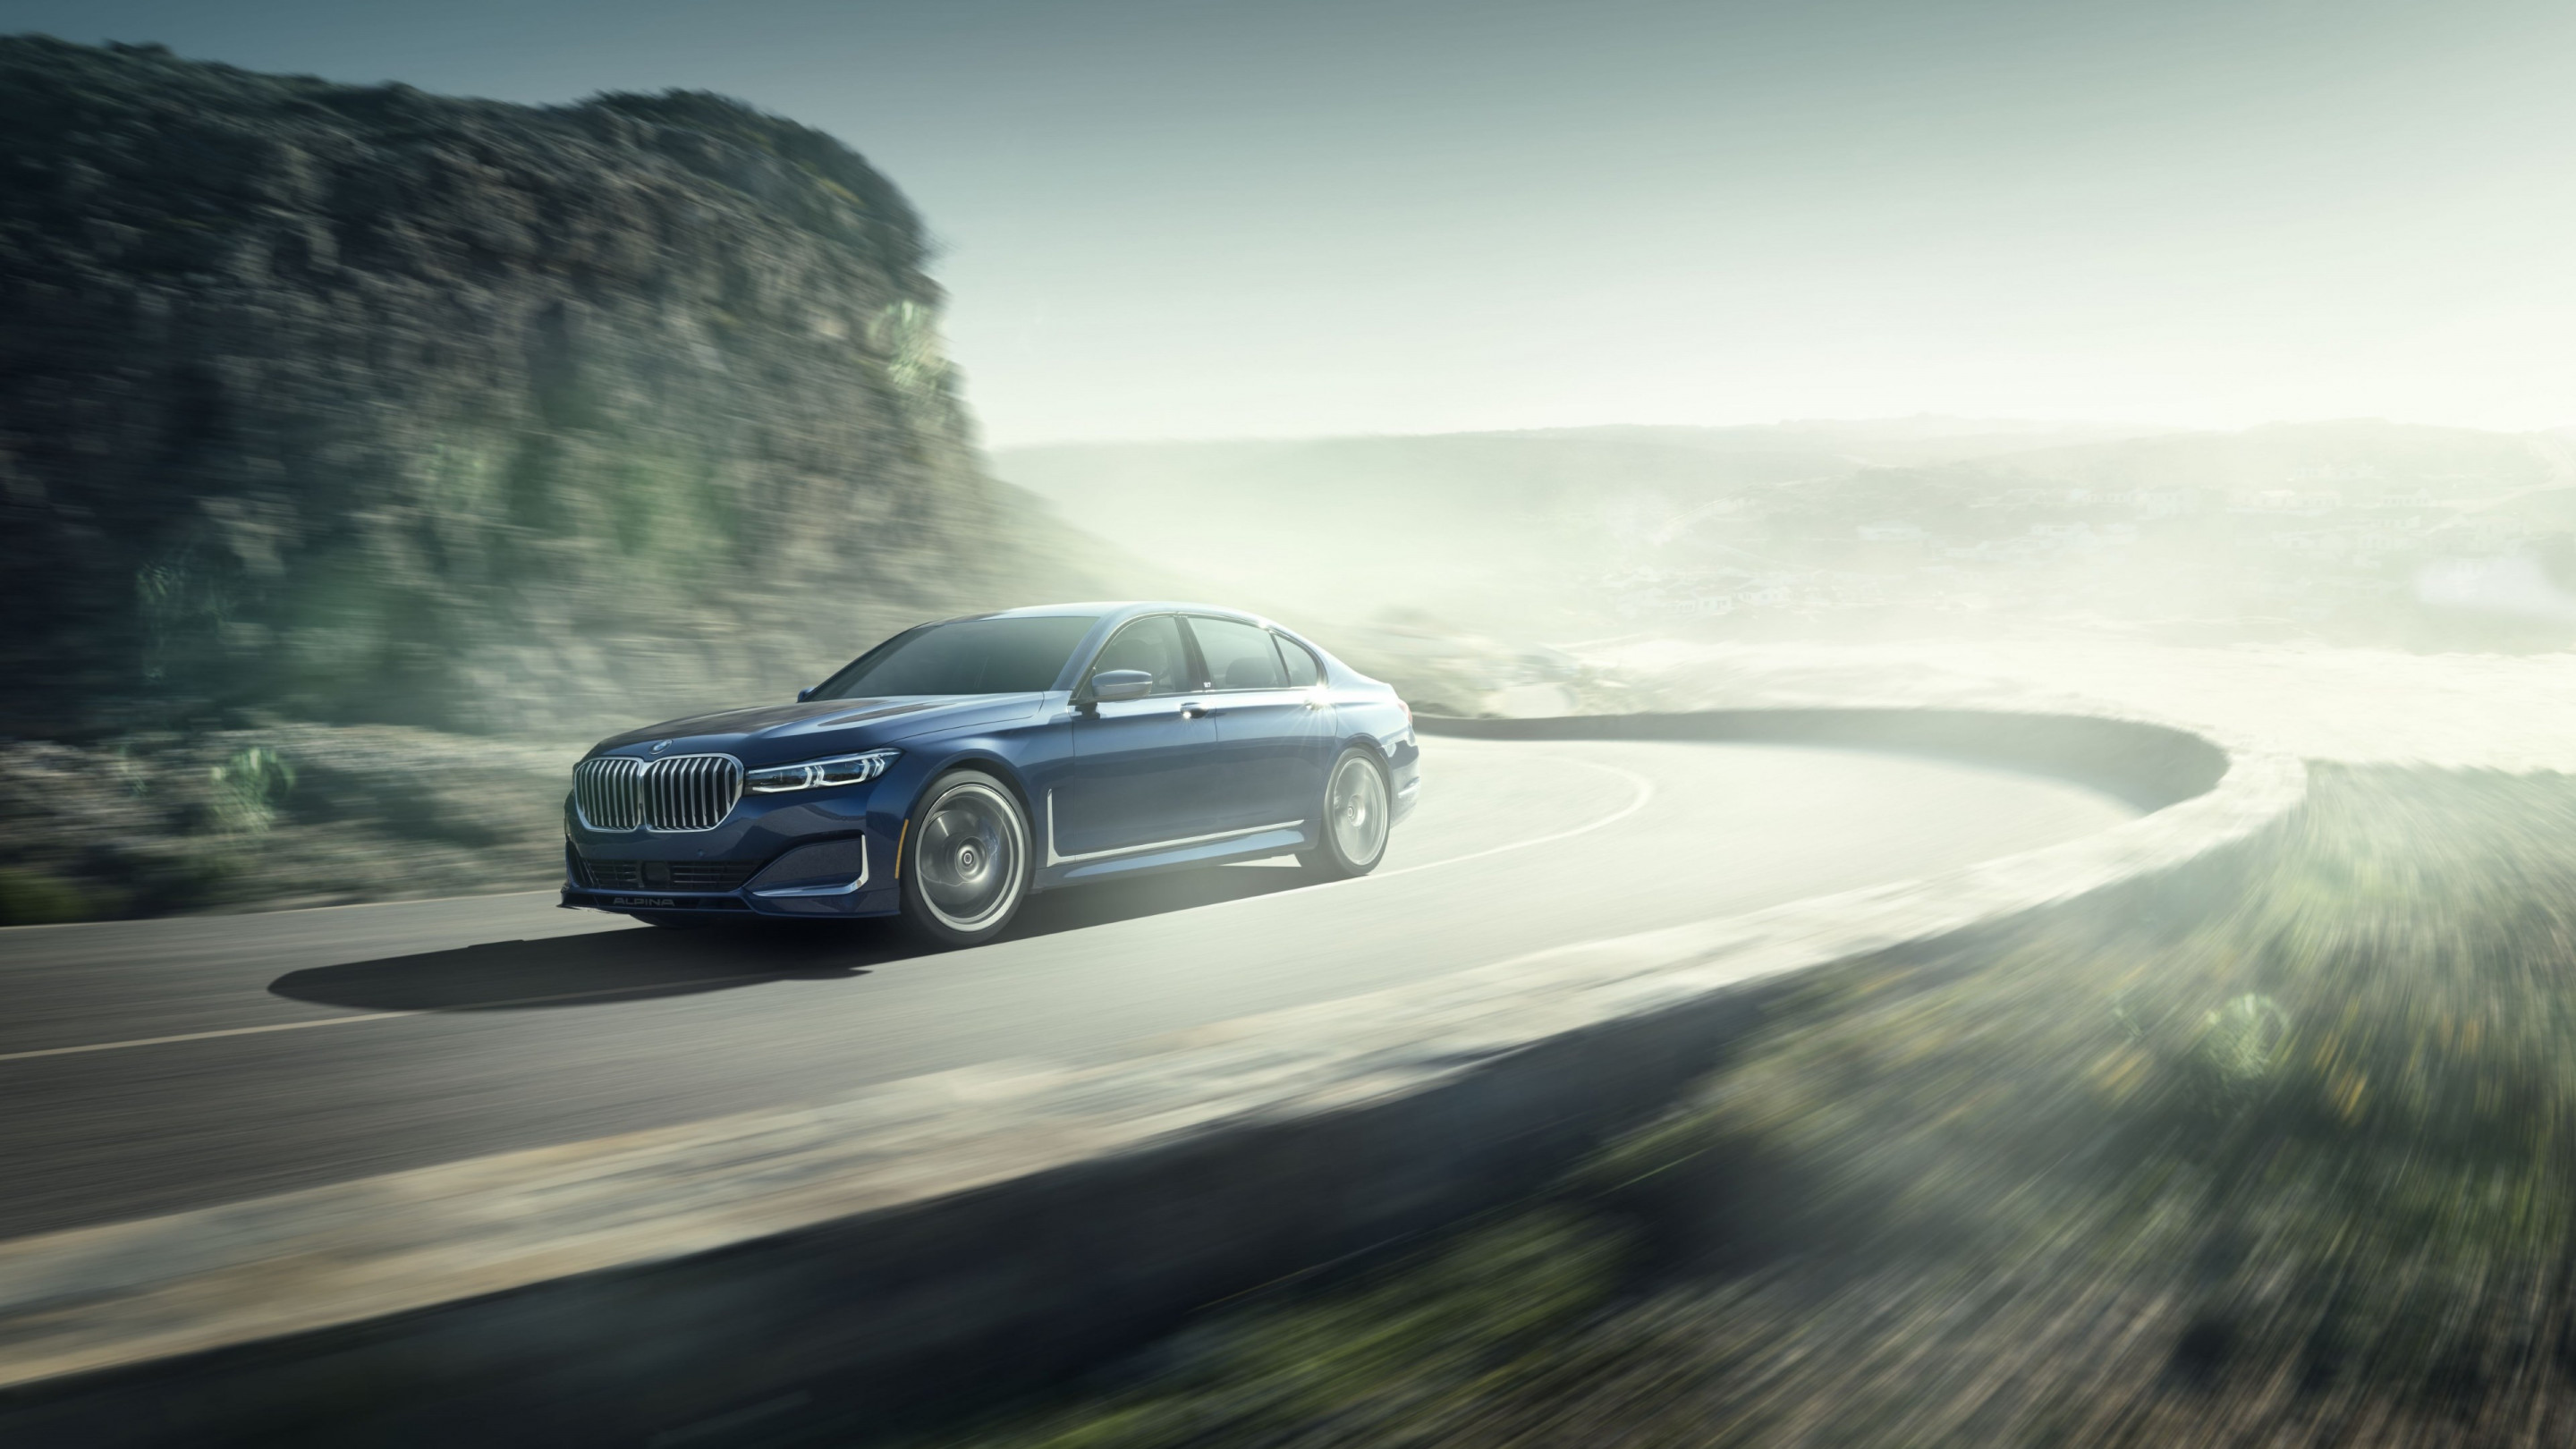 BMW Alpina B7 2019 wallpaper 2880x1620